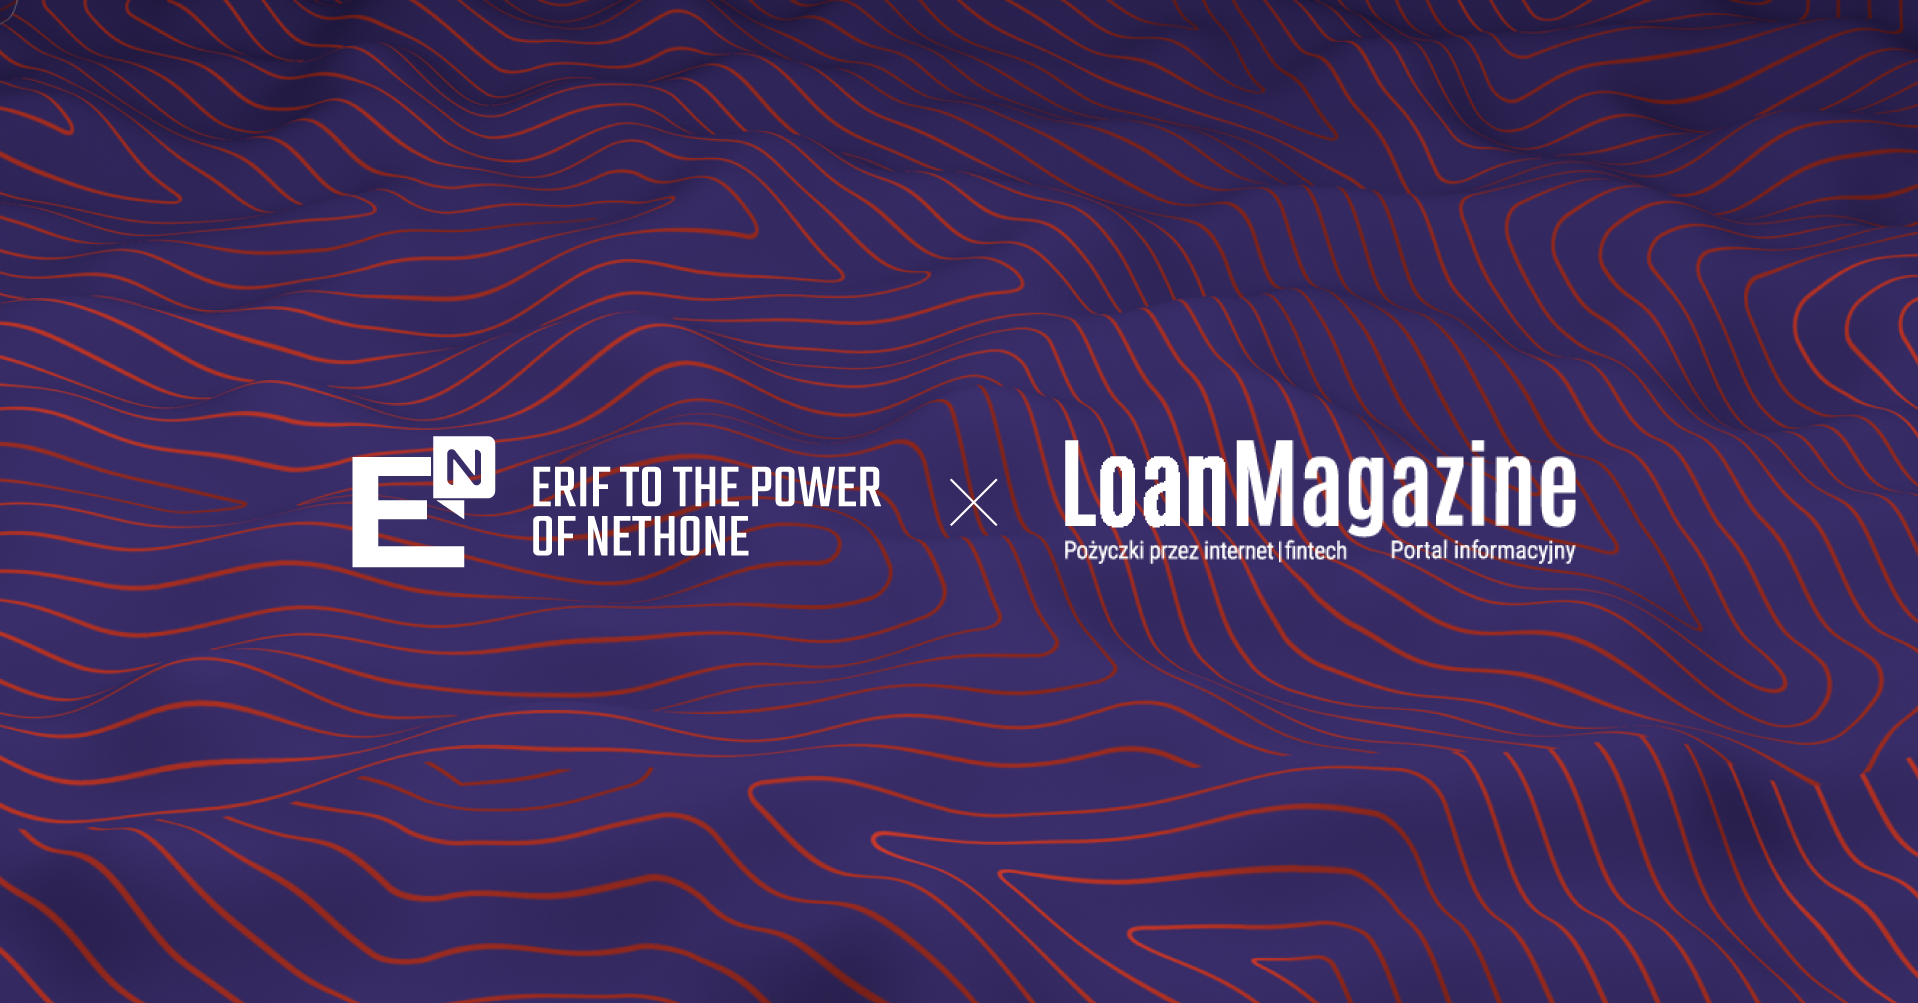 Erif to the power of Nethone - Loan Magazine Award